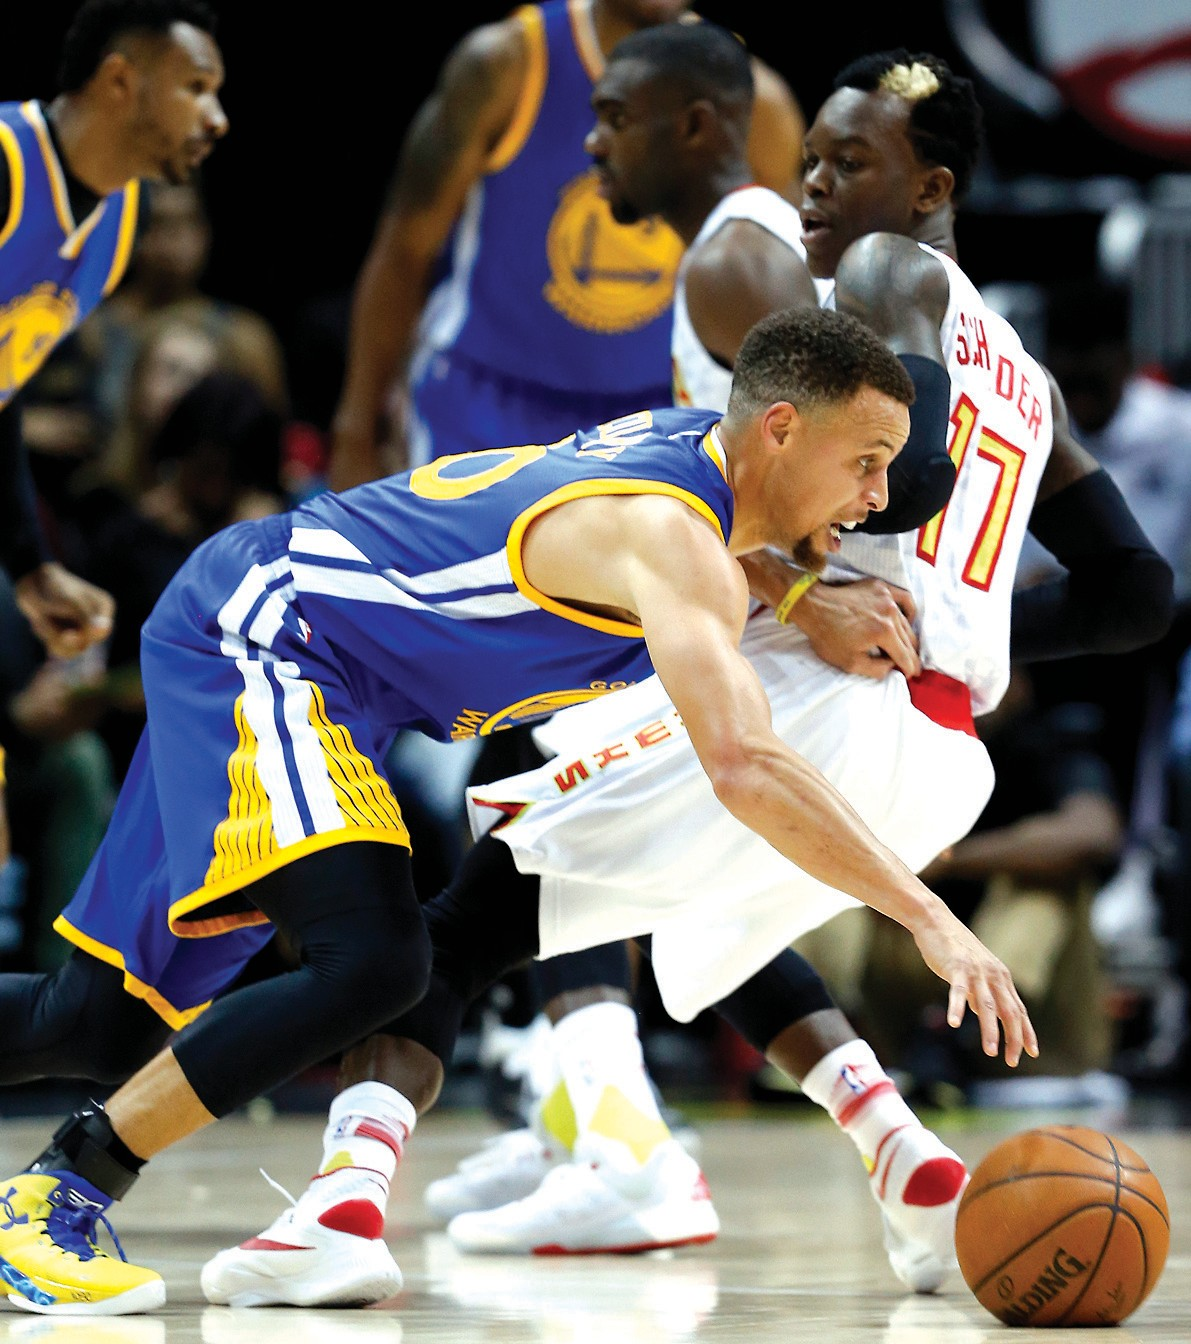 Golden State Warriors guard Stephen Curry (30) drives against Atlanta Hawks guard Dennis Schroder (17) in the first half on Monday.